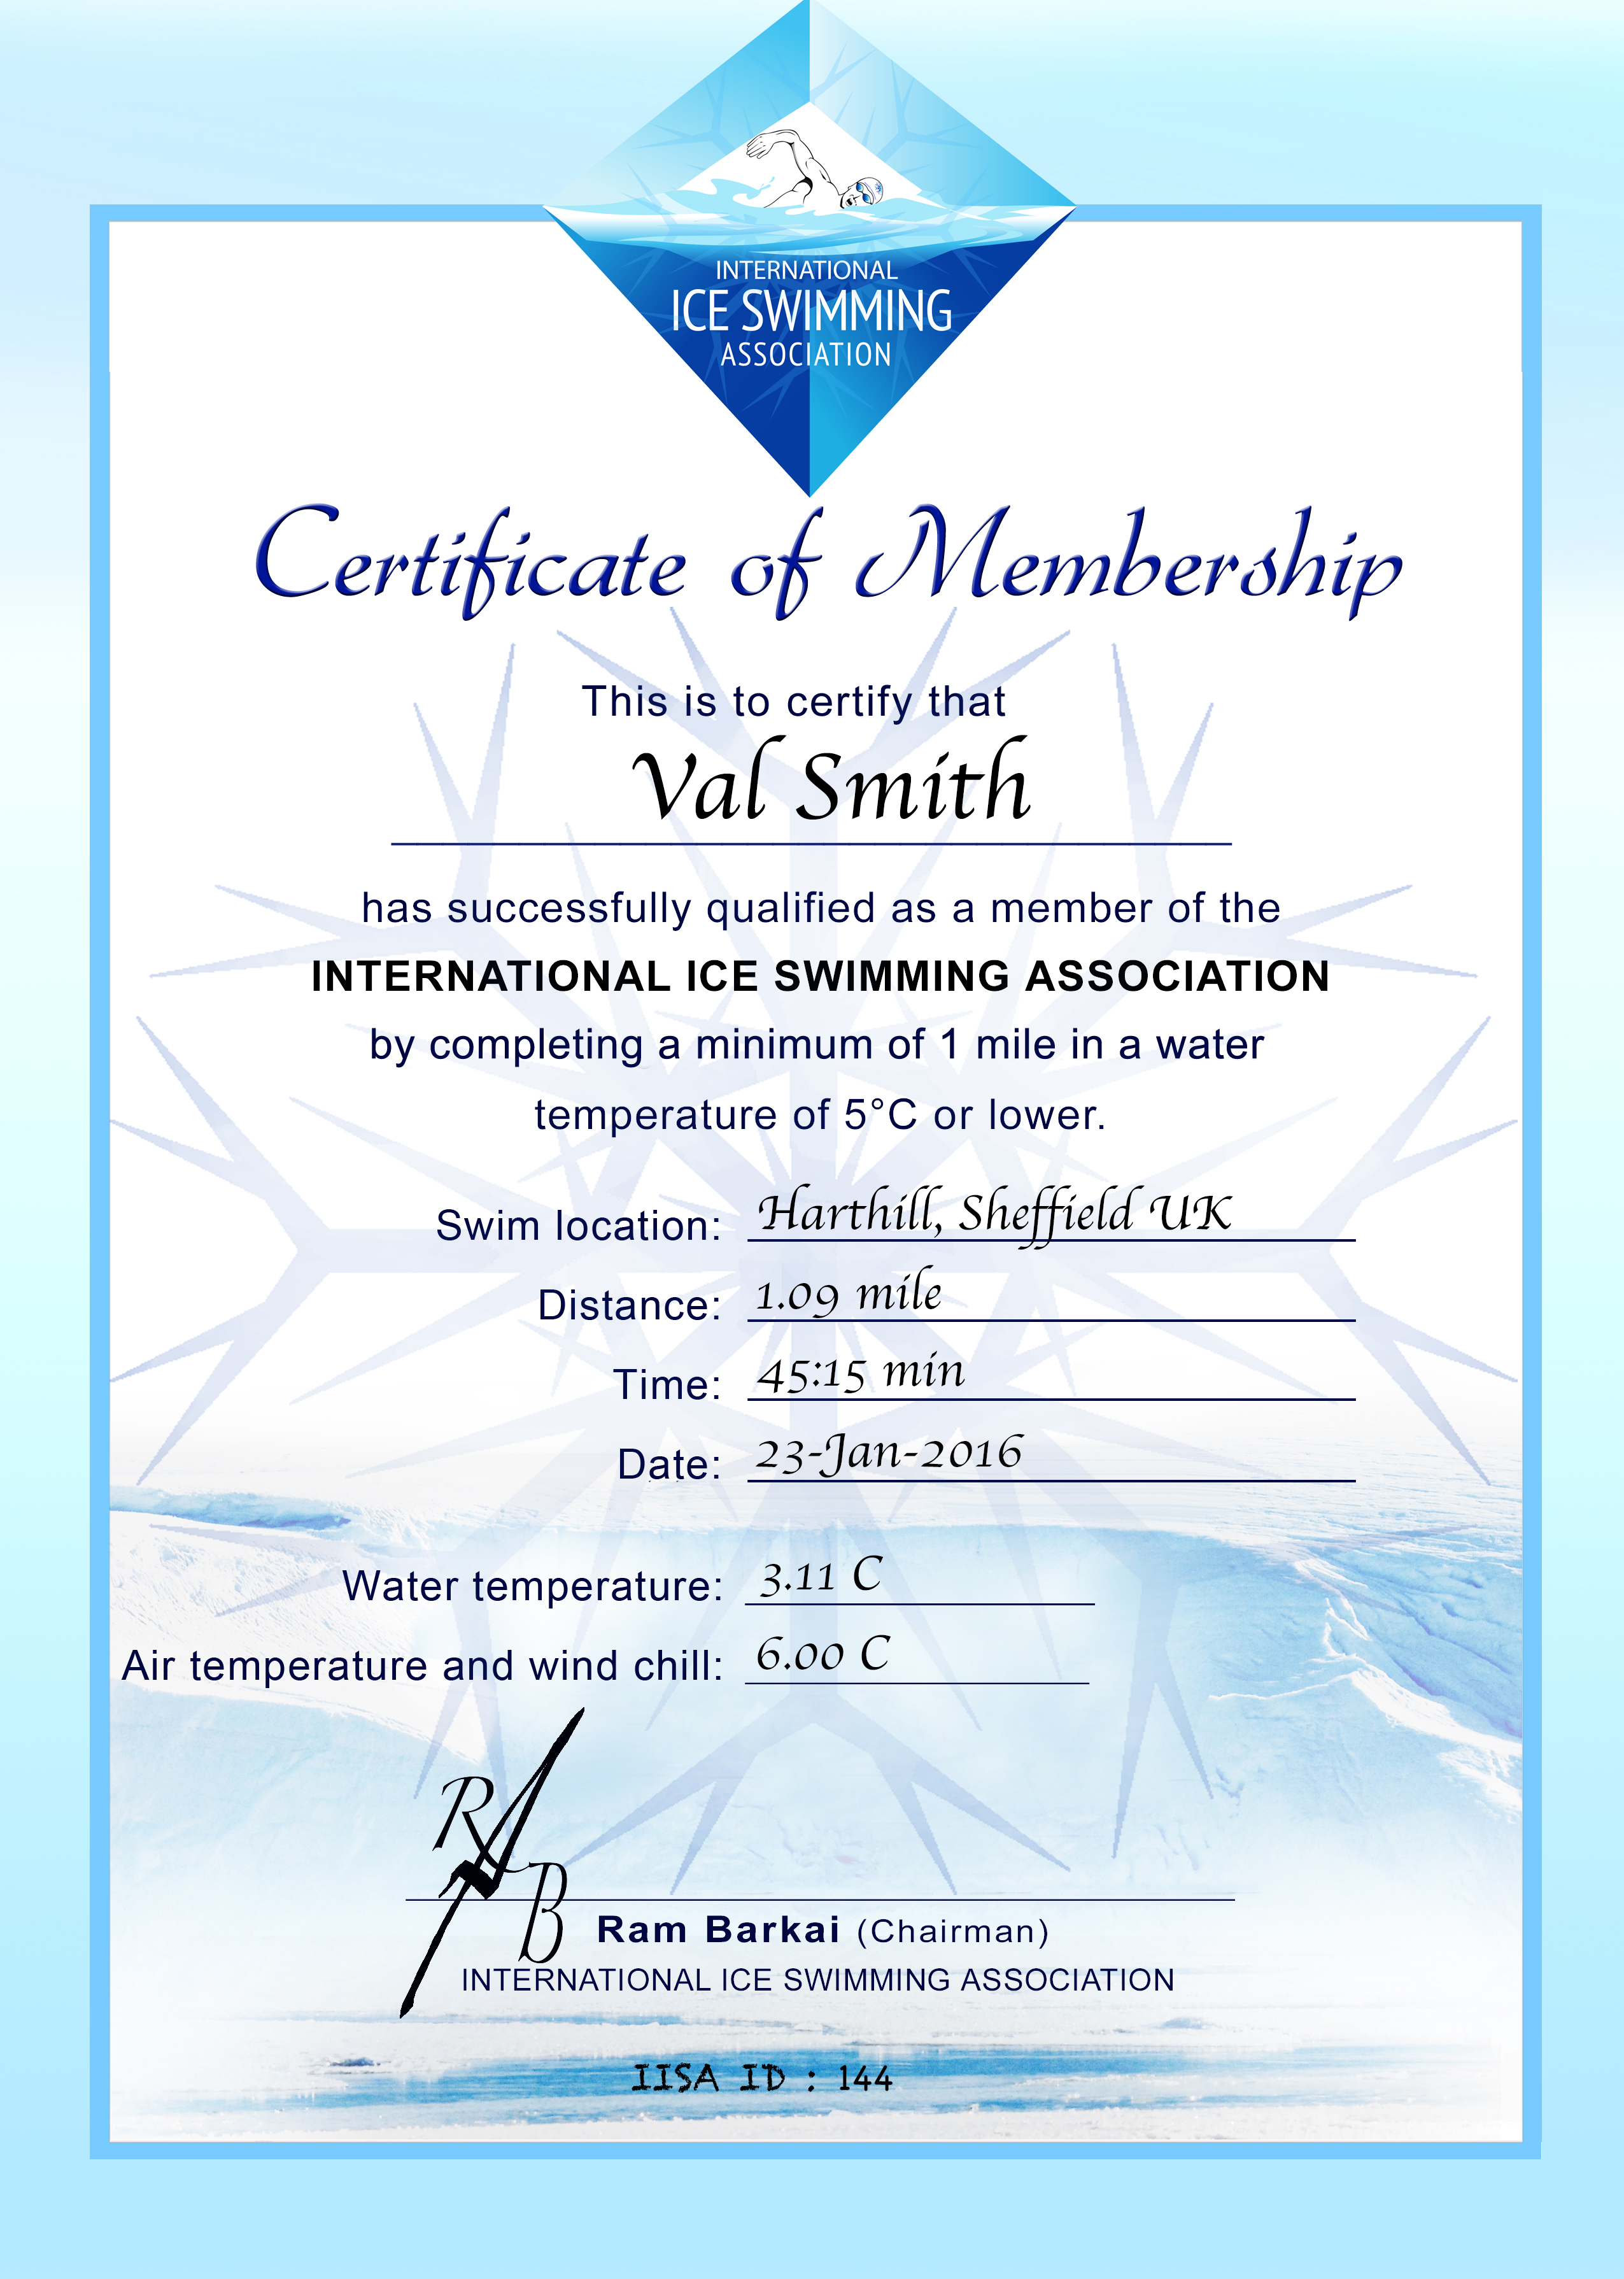 Ice Mile Certificate - Val Smith